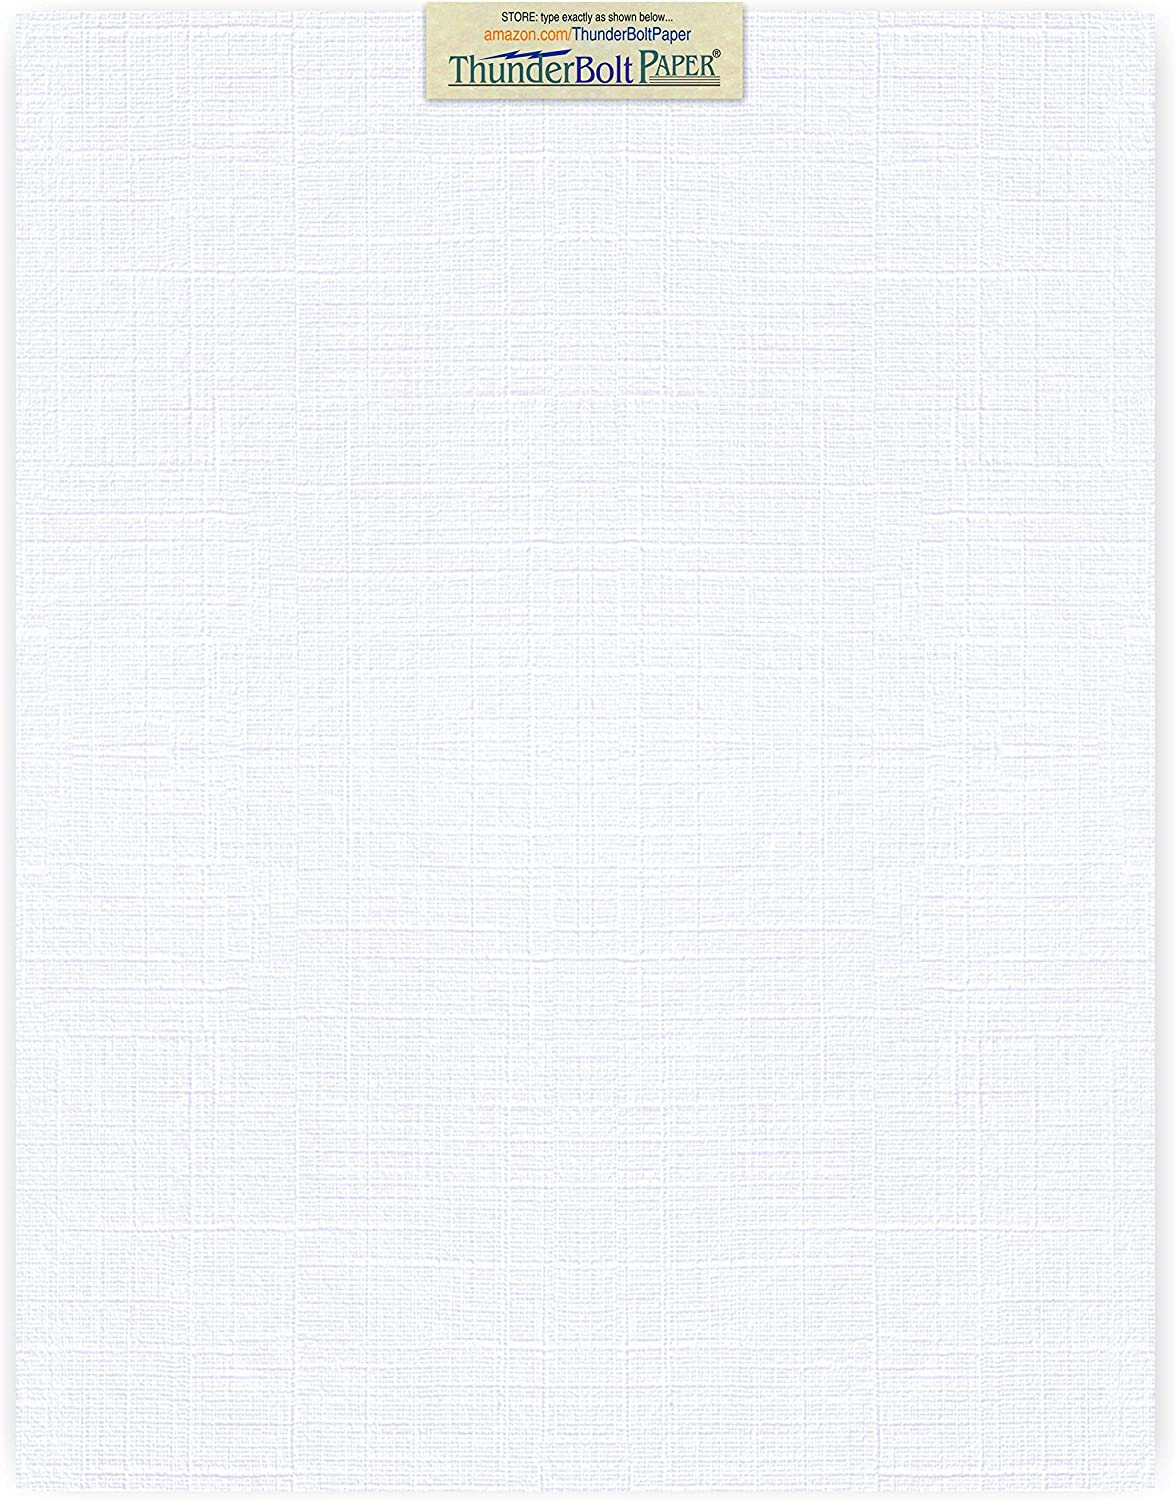 11 X 14 11X14 Inches Fine Linen Textured Finish Cardstock 25 Bright White Linen 80# Cover Paper Sheets Scrapbook|Picture-Frame Size 80 lb//pound Card Weight